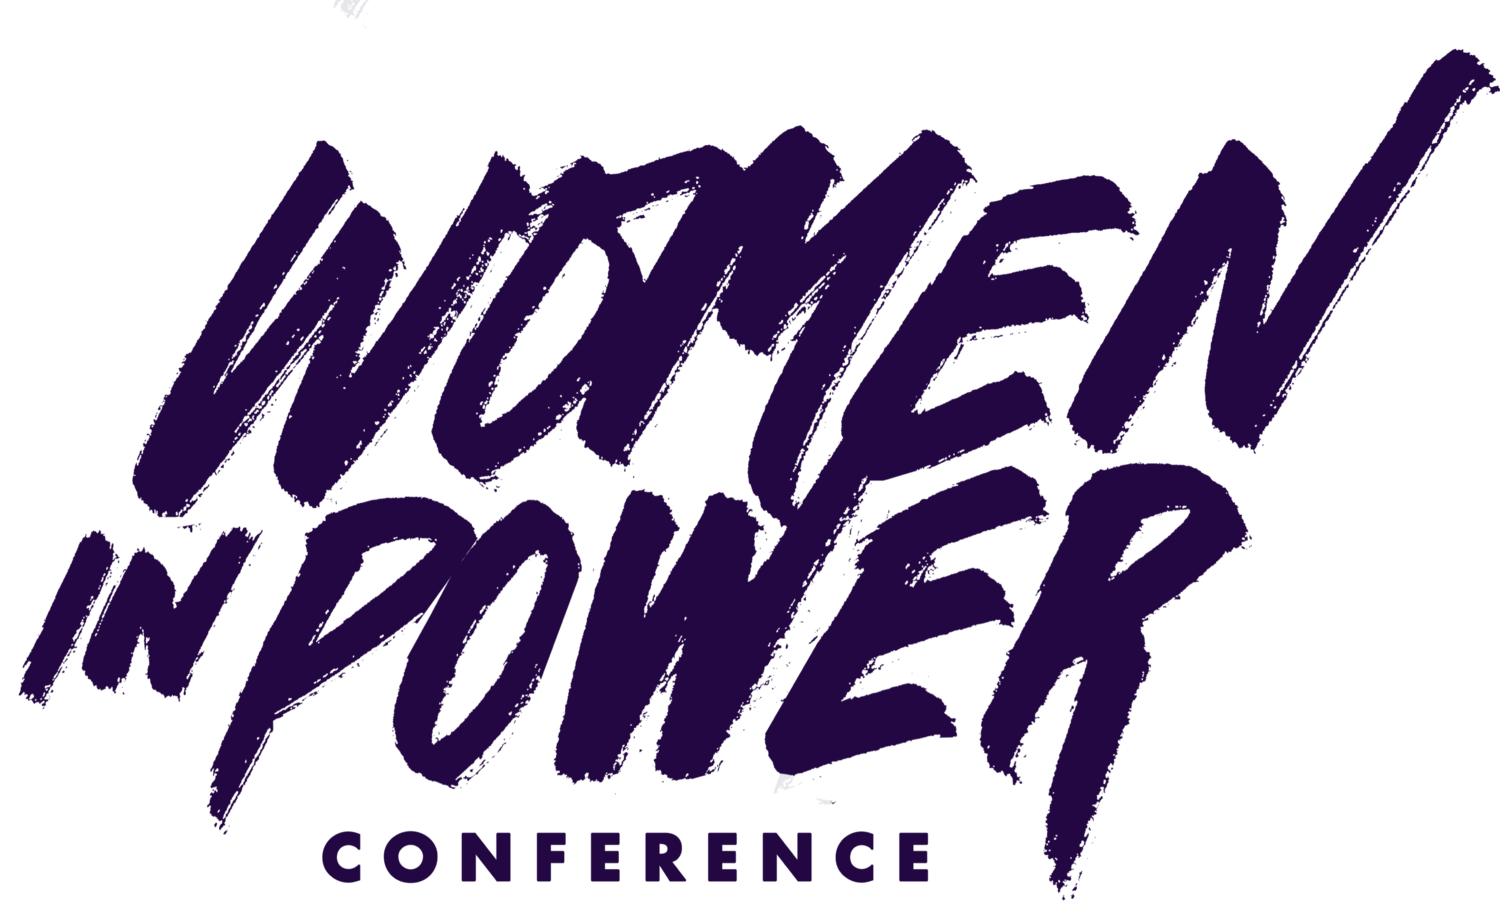 Women in Power Conference